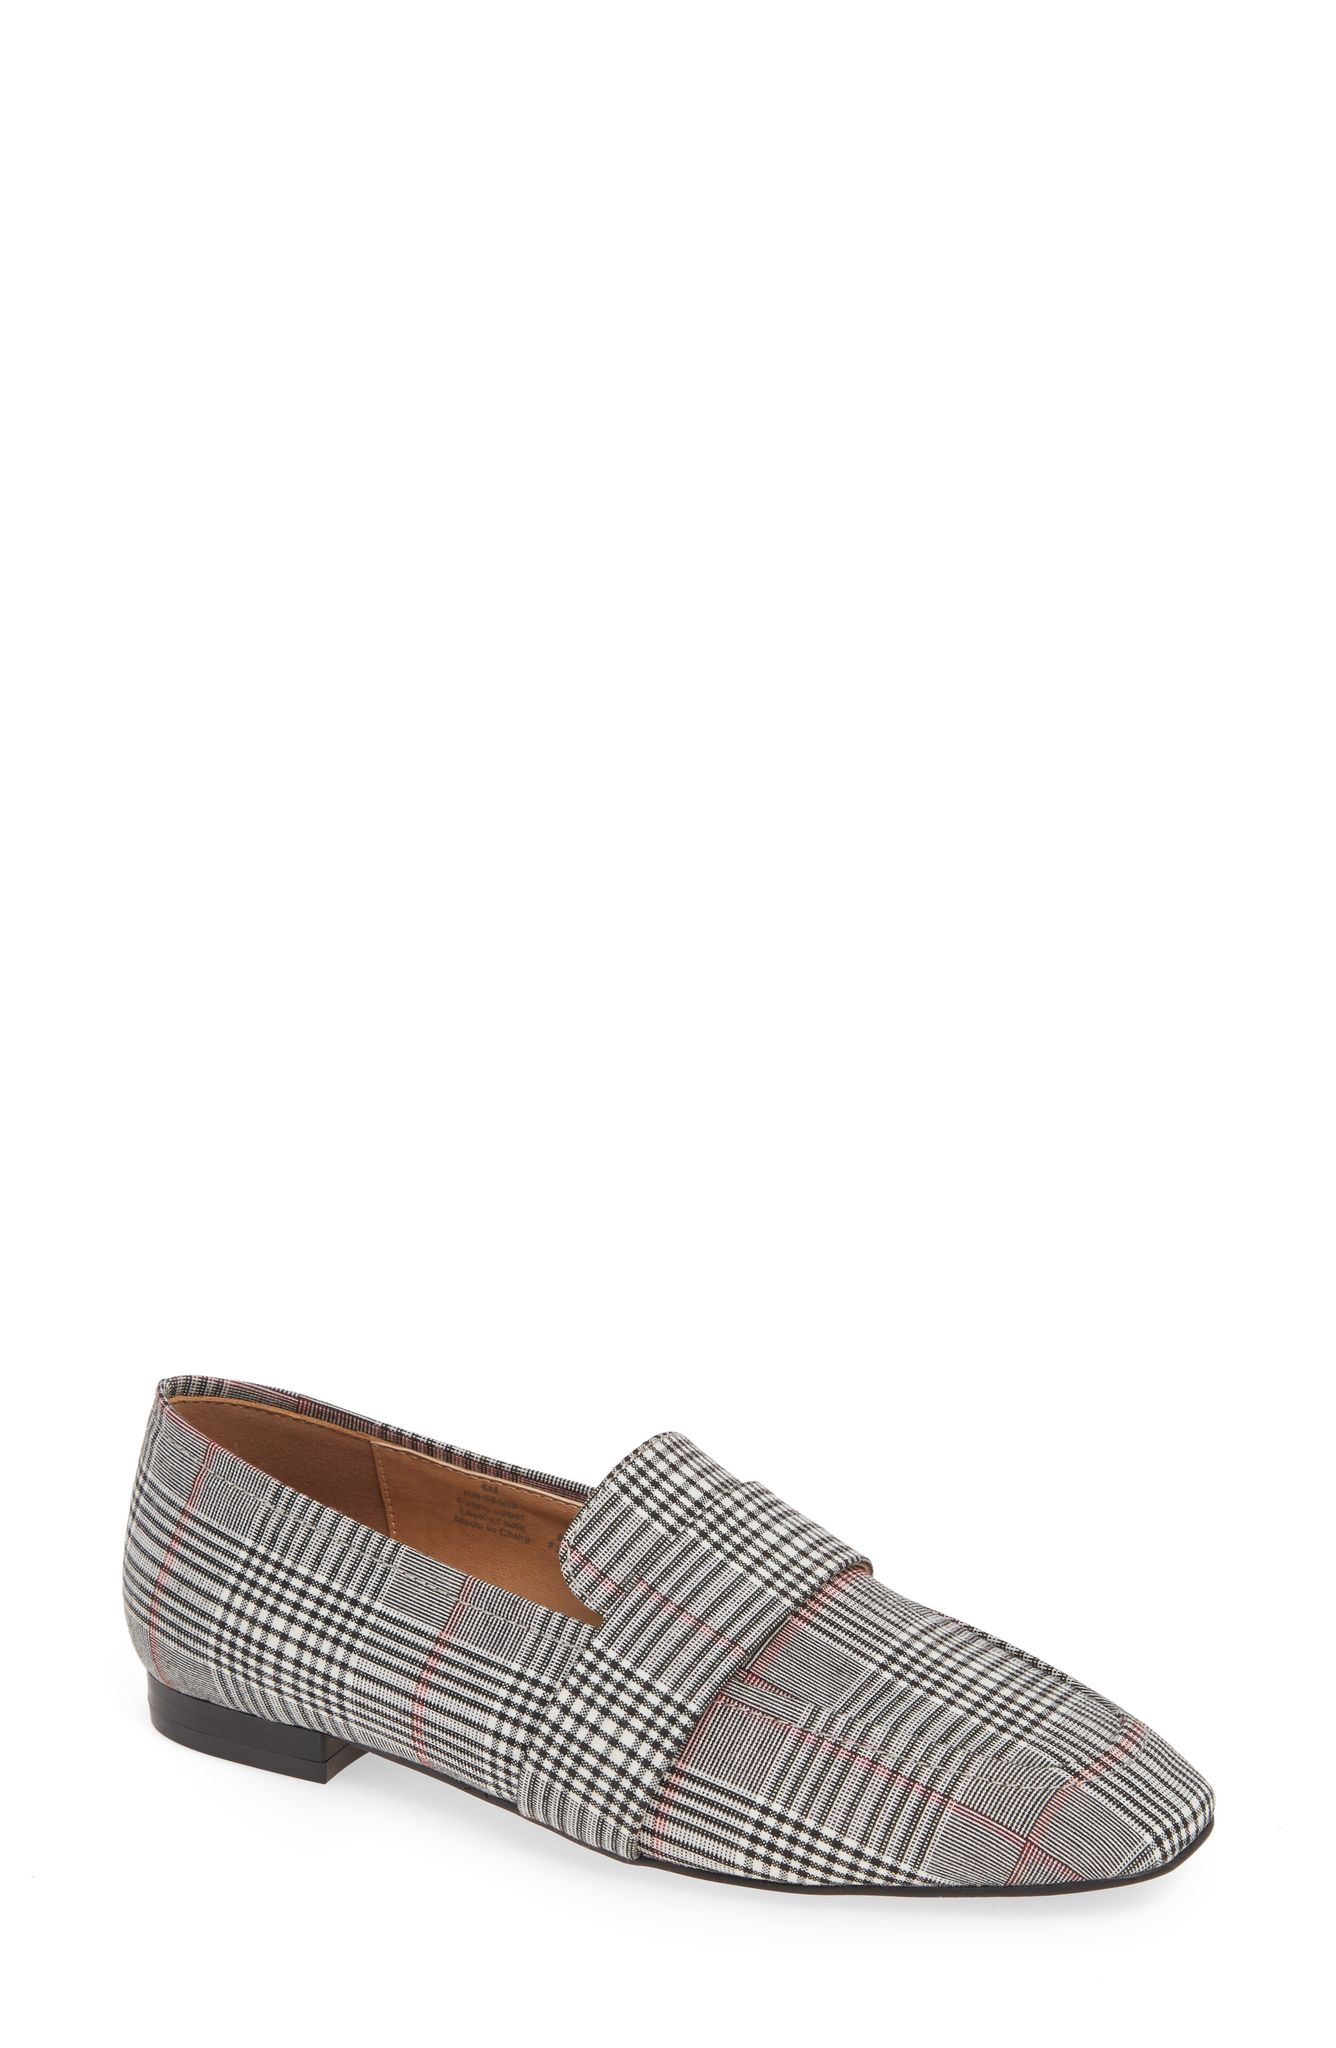 Halogen Lucy Menswear Flat (normally $99.95): NOW $64.90 (Image: Nordstrom)